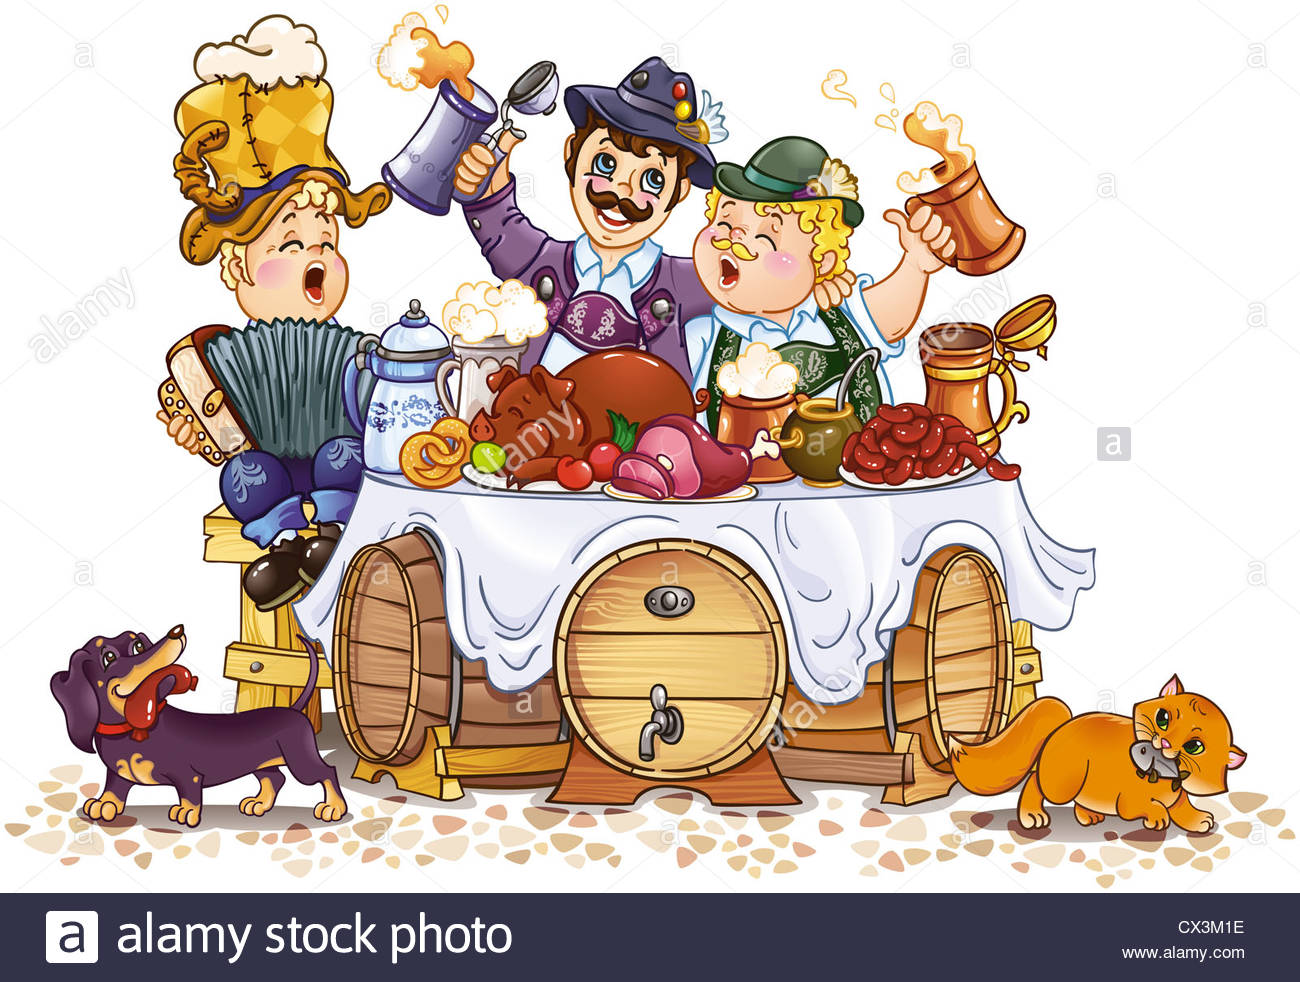 1300x982 Humorous Drawing Of Oktoberfest Festival Stock Photo, Royalty Free